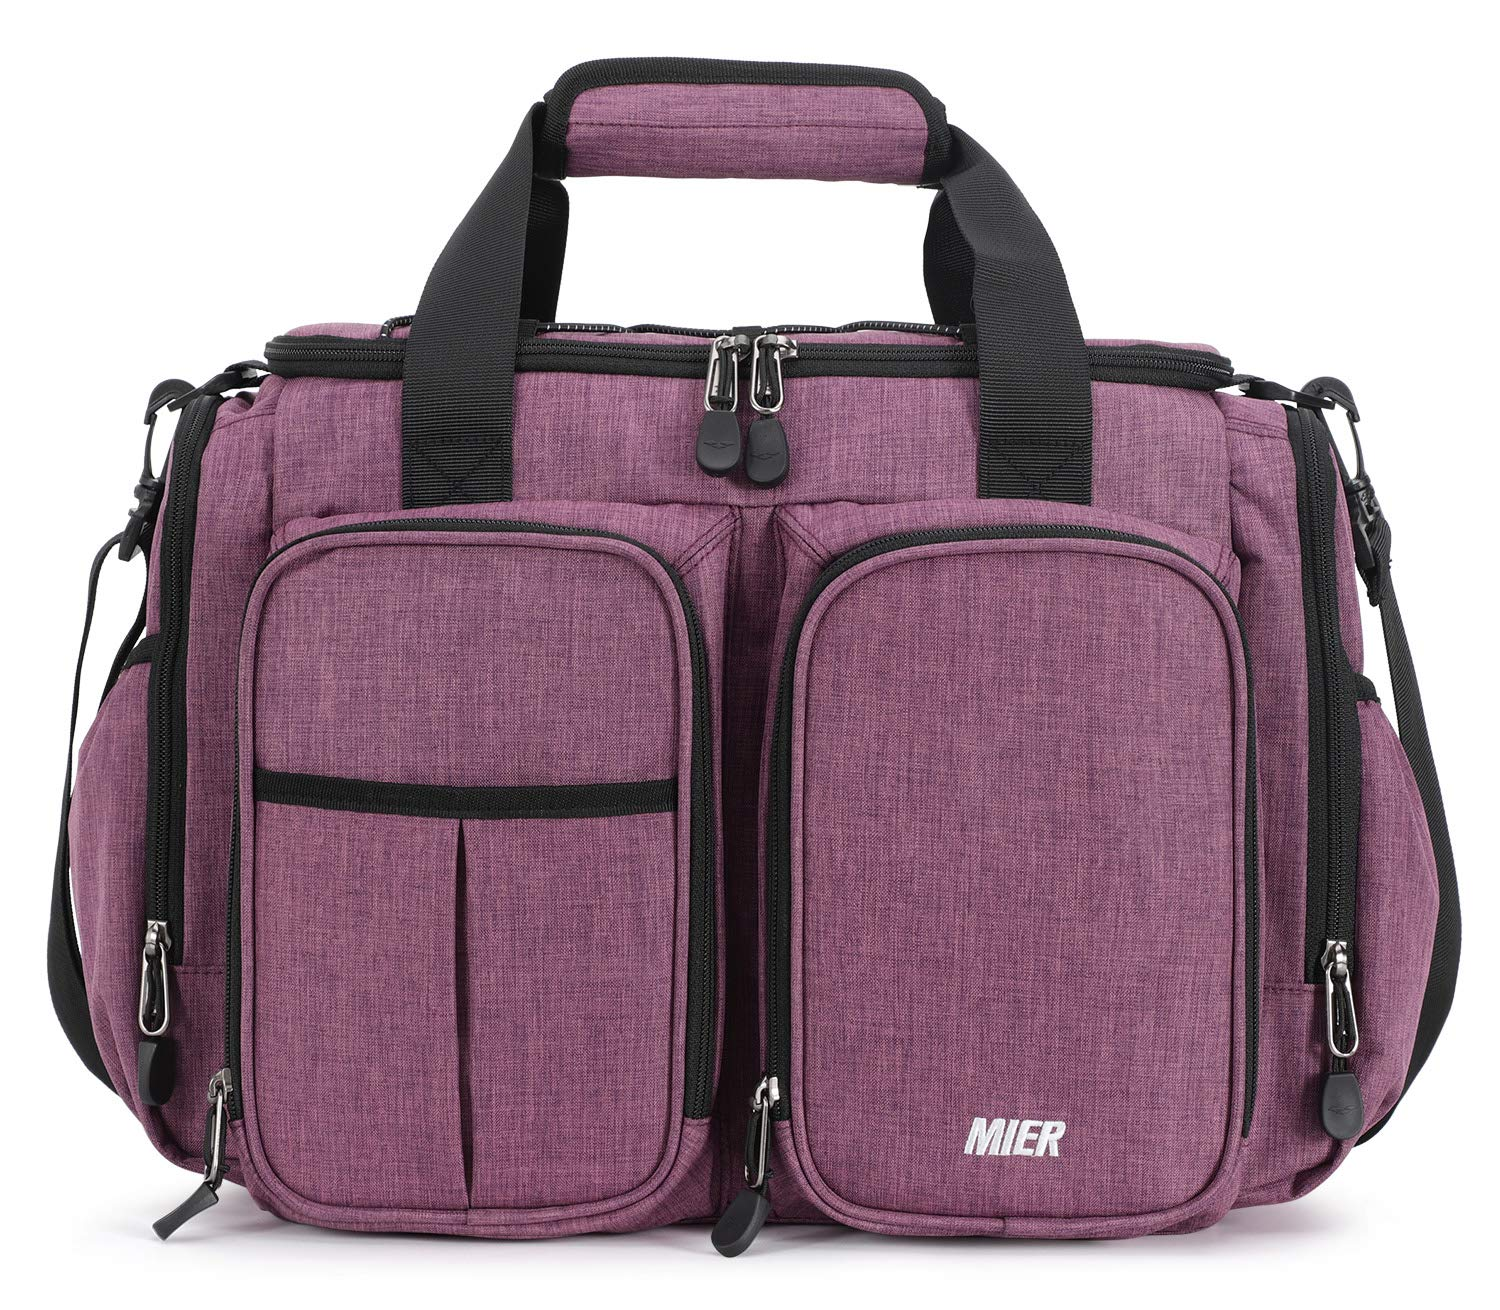 MIER Large Insulated Lunch Bag for Men Women Leakproof Soft Cooler Bag with Multiple Pockets, 20 Can, Rectangle, Purple by MIER